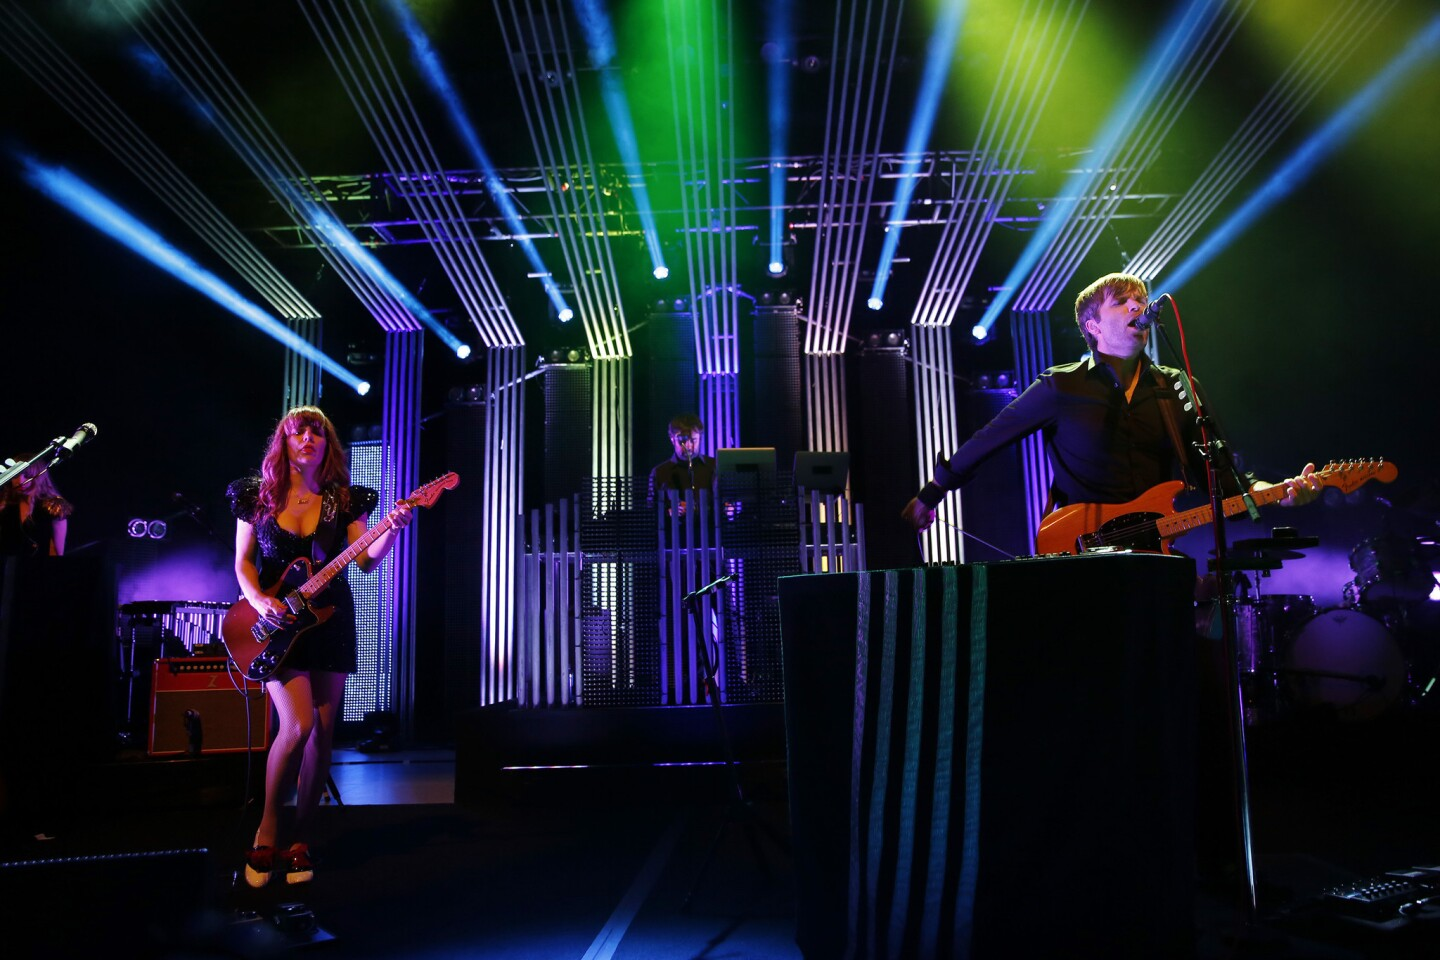 The Postal Service, with vocalist Ben Gibbard (of Death Cab for Cutie) and Jenny Lewis (of Rilo Kiley) perform at the Greek Theatre.